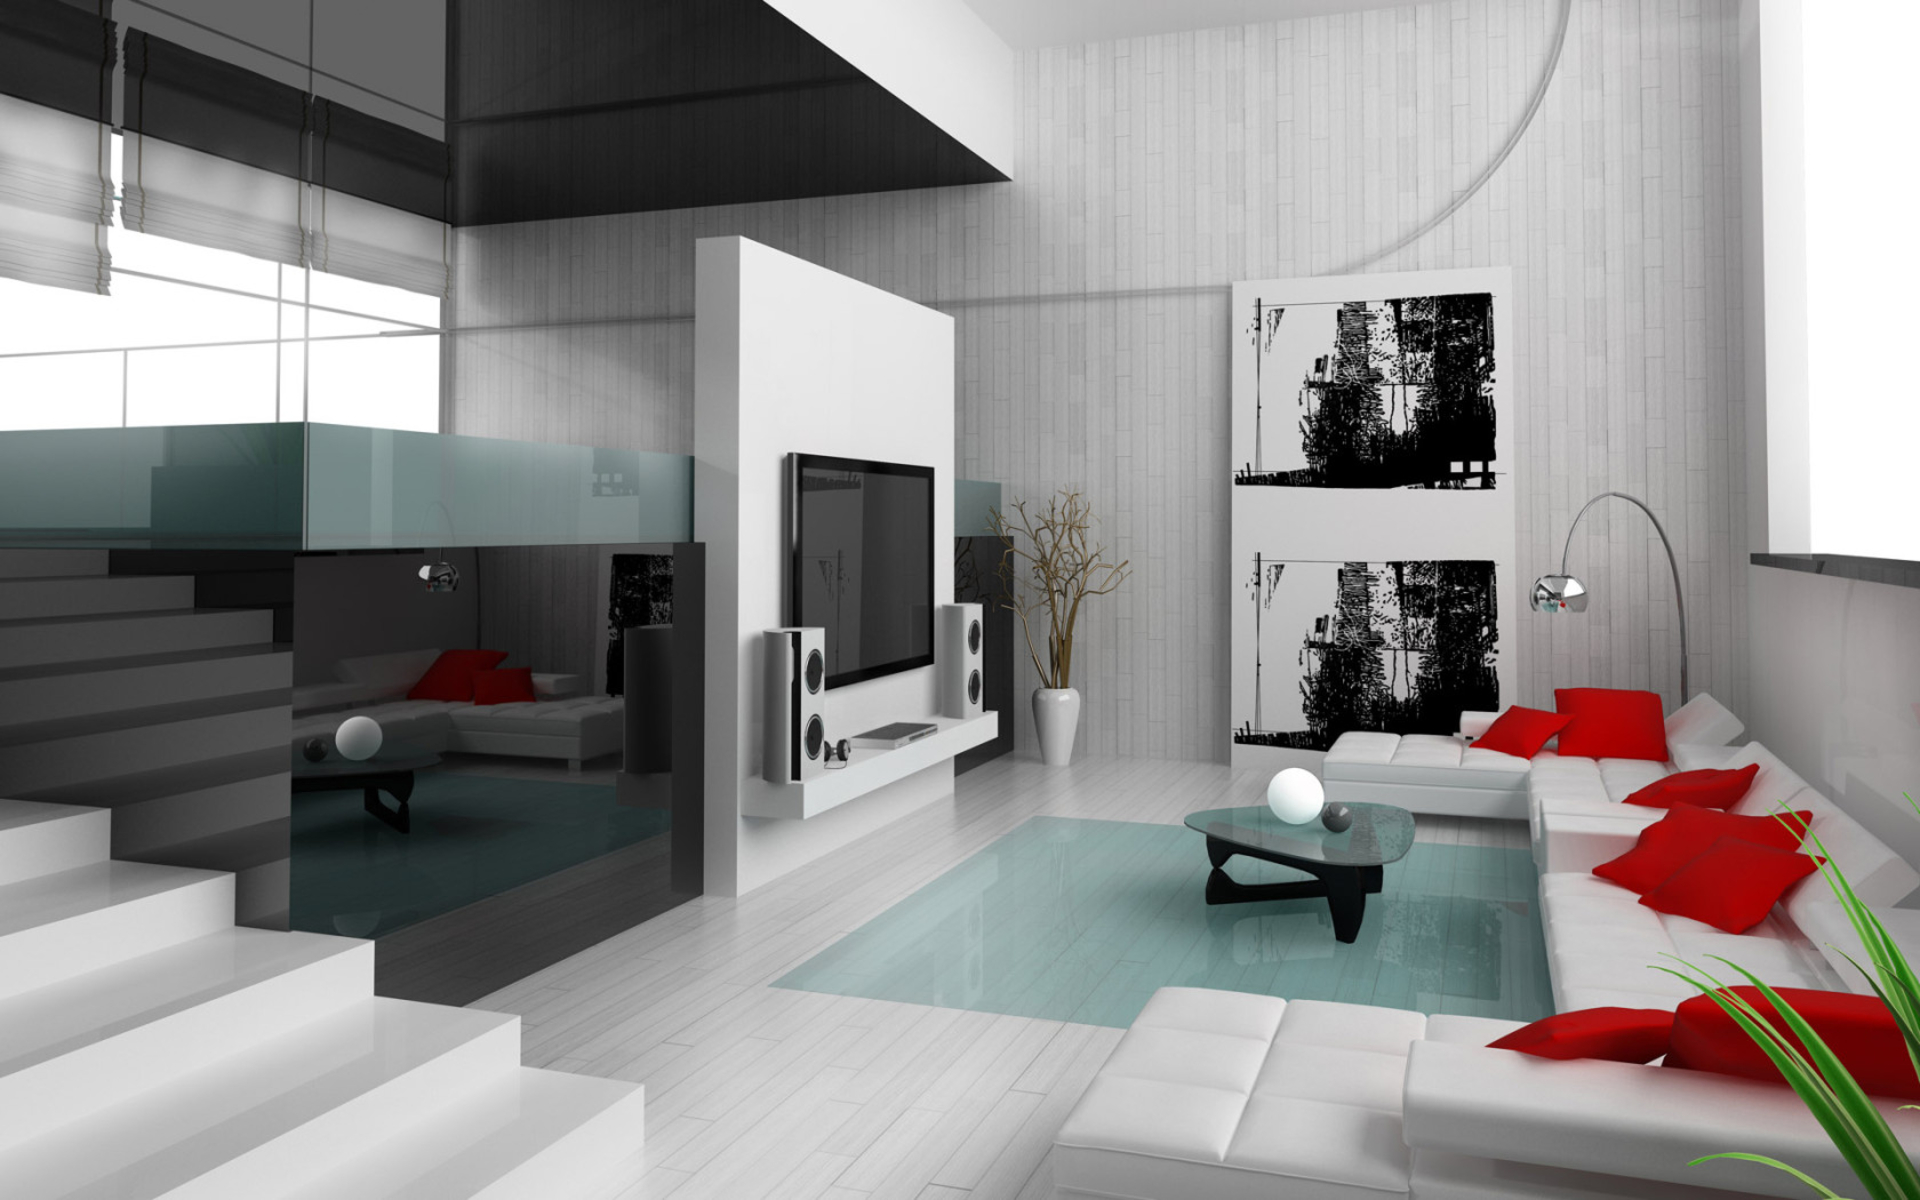 cool modern apartment living room interior with nice arch lamp alsocool modern apartment living room interior with nice arch lamp also white sofa and red cushion apartments images totally cool room designs apartment